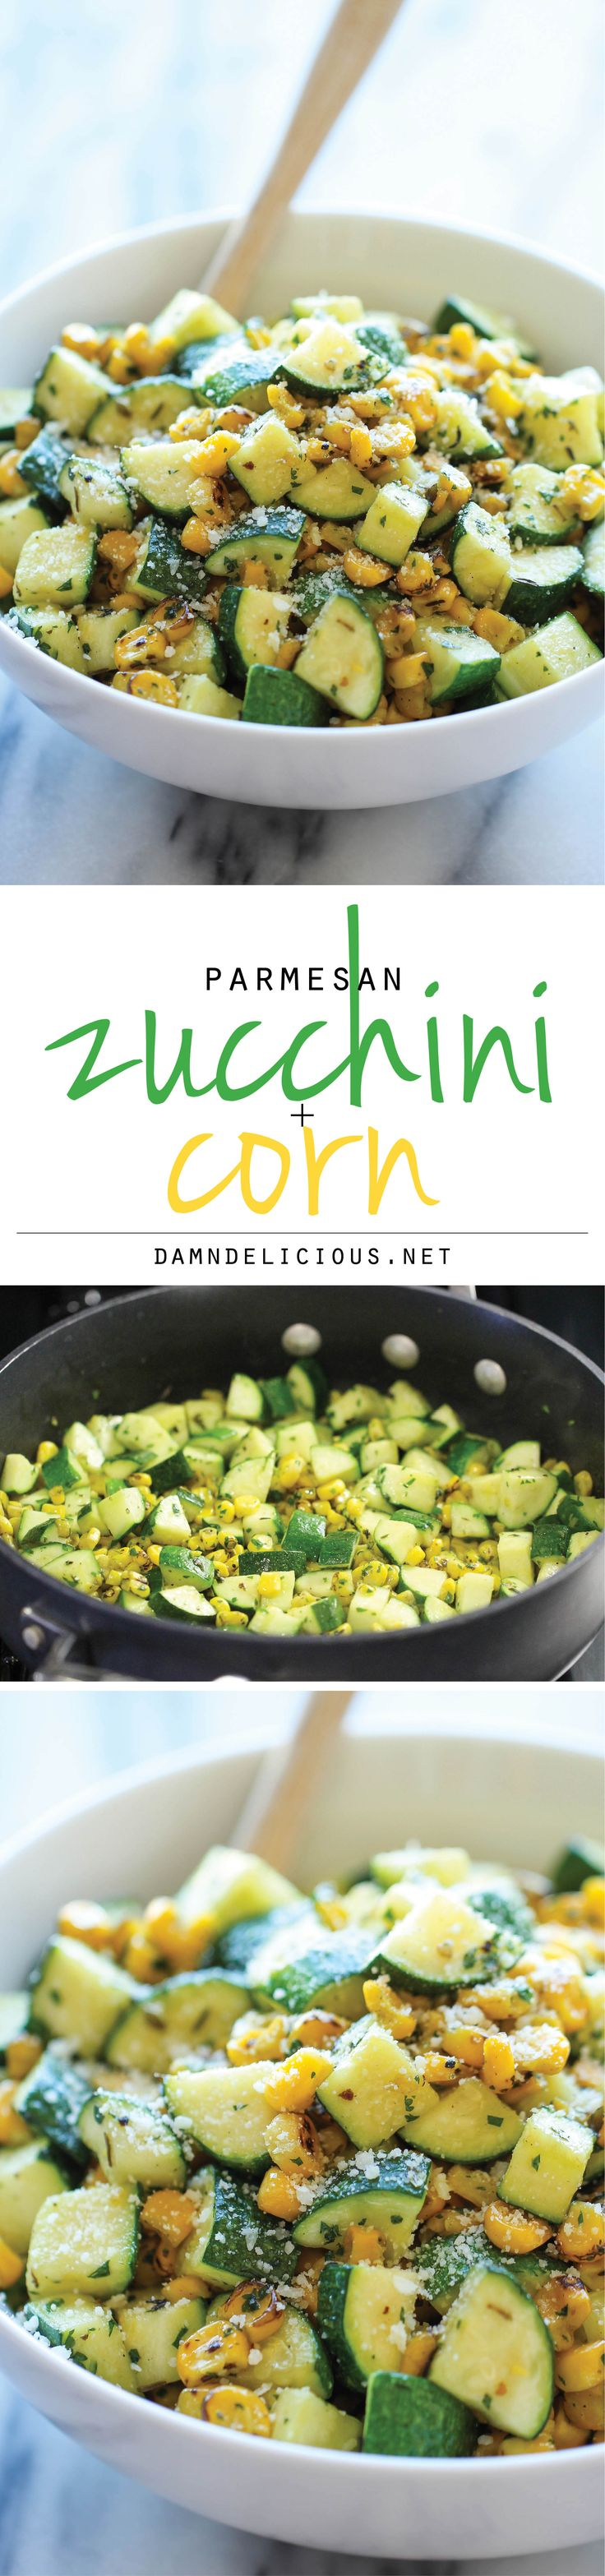 Parmesan Zucchini and Corn - A healthy 10 minute side dish